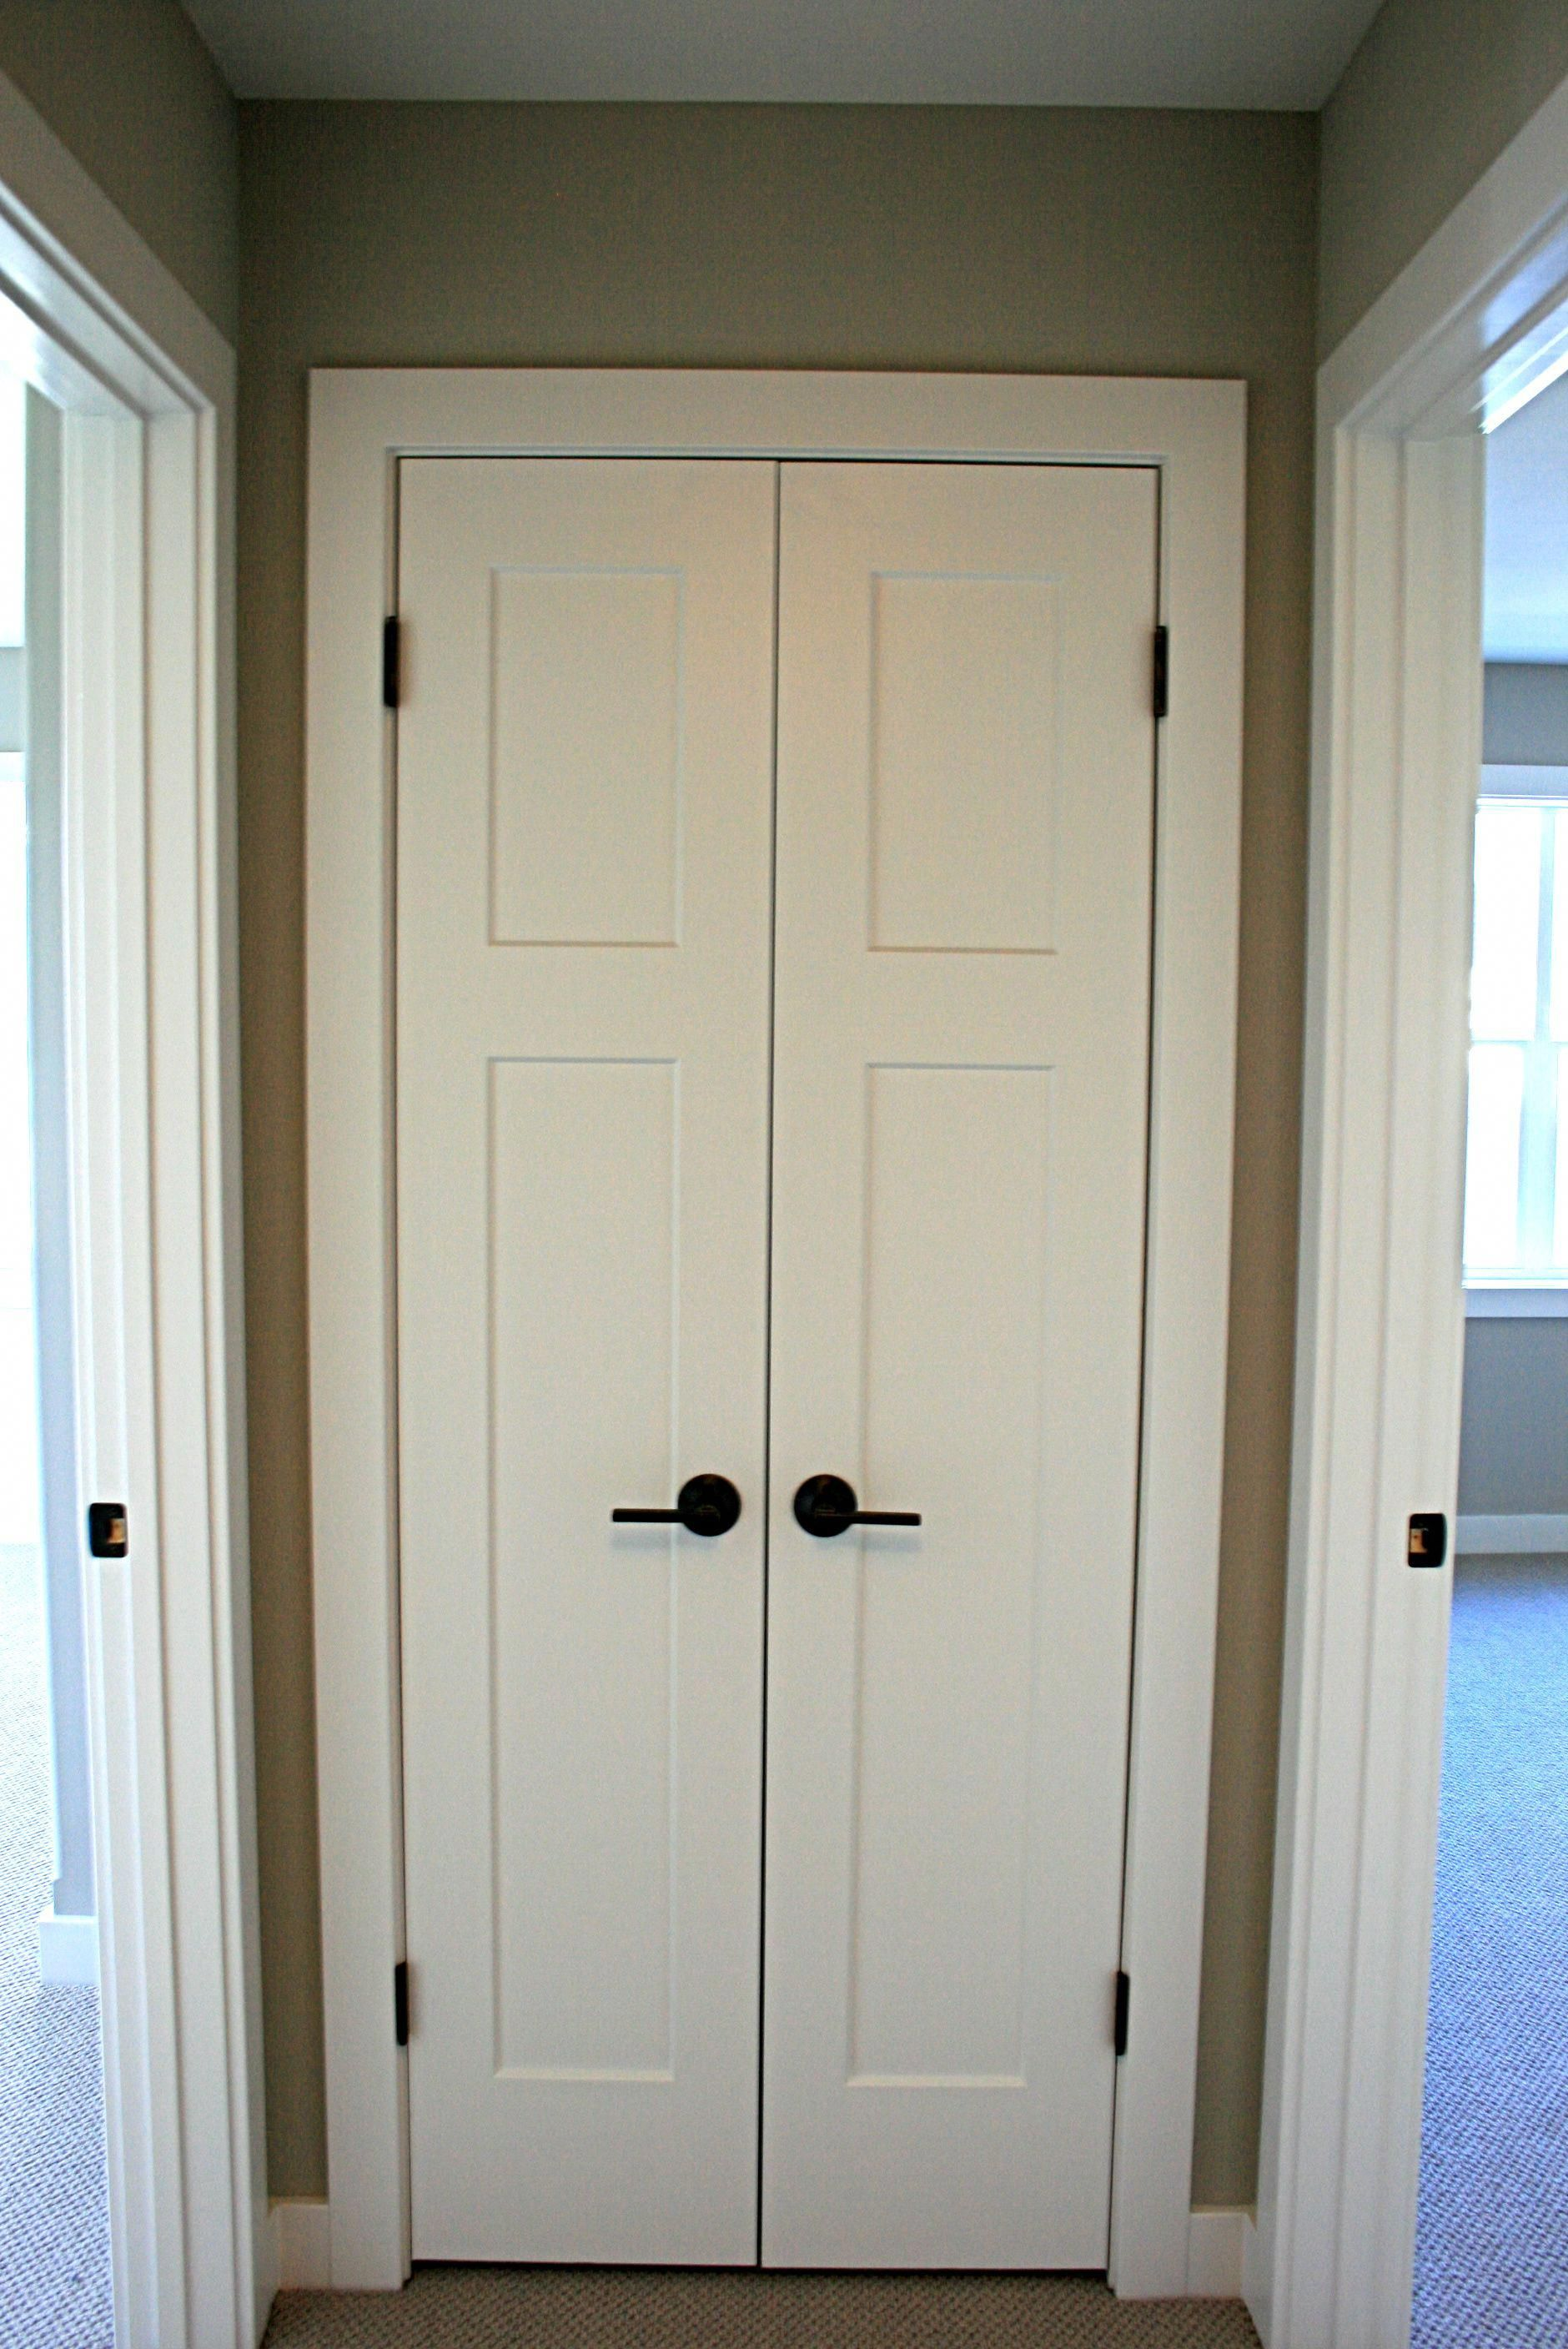 French Doors Are An Option You Don T See Very Often Louvered Or Pocket Doors Hiding Laundry Fac White Interior Doors French Closet Doors Double Doors Interior